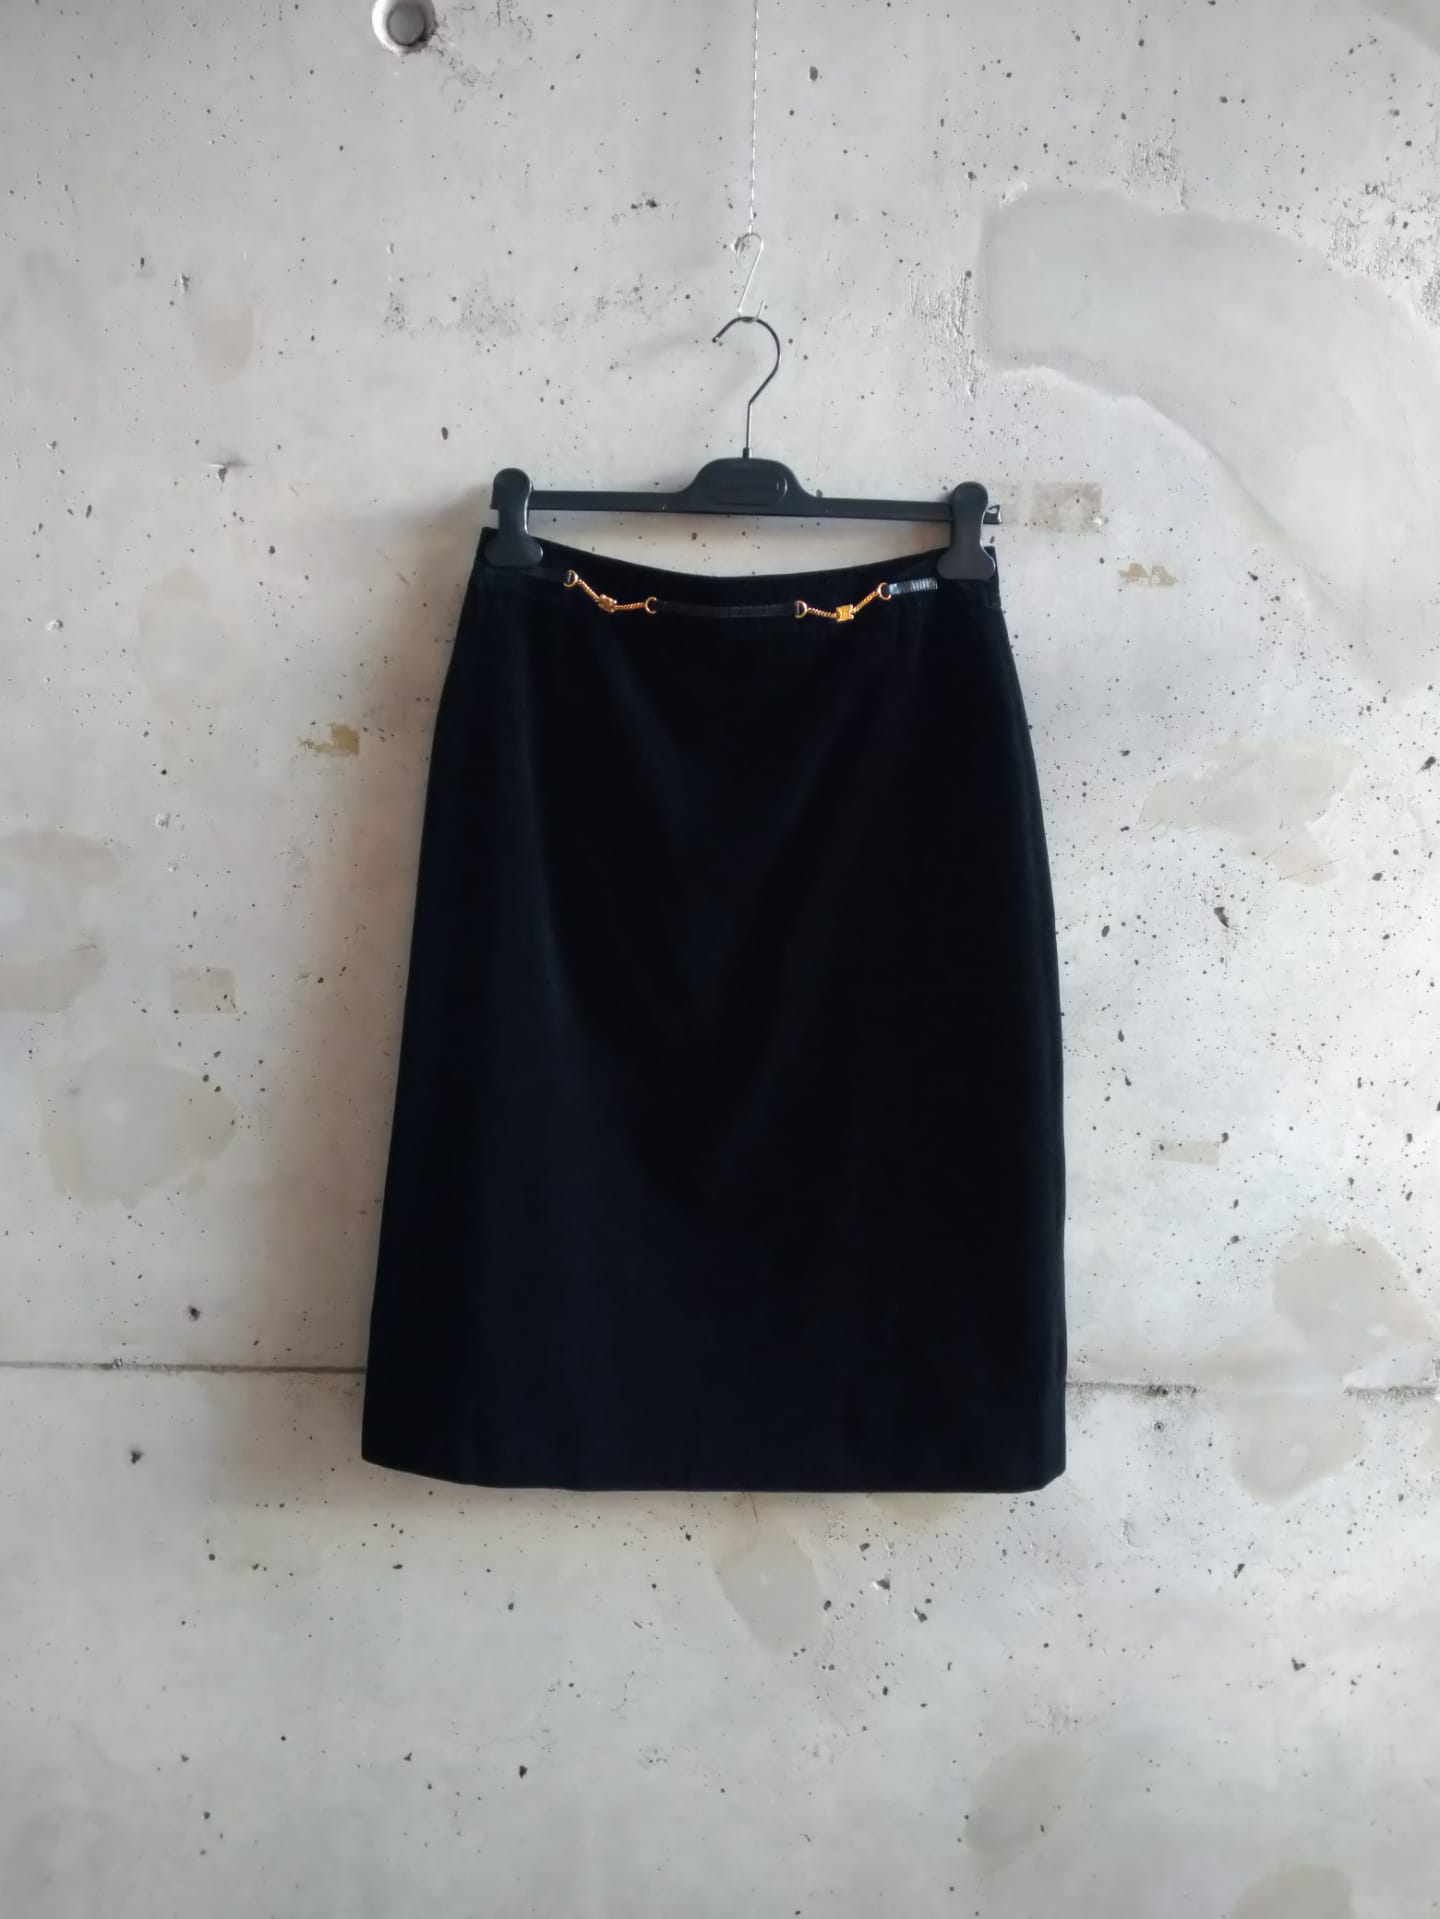 Celine black velvet skirt